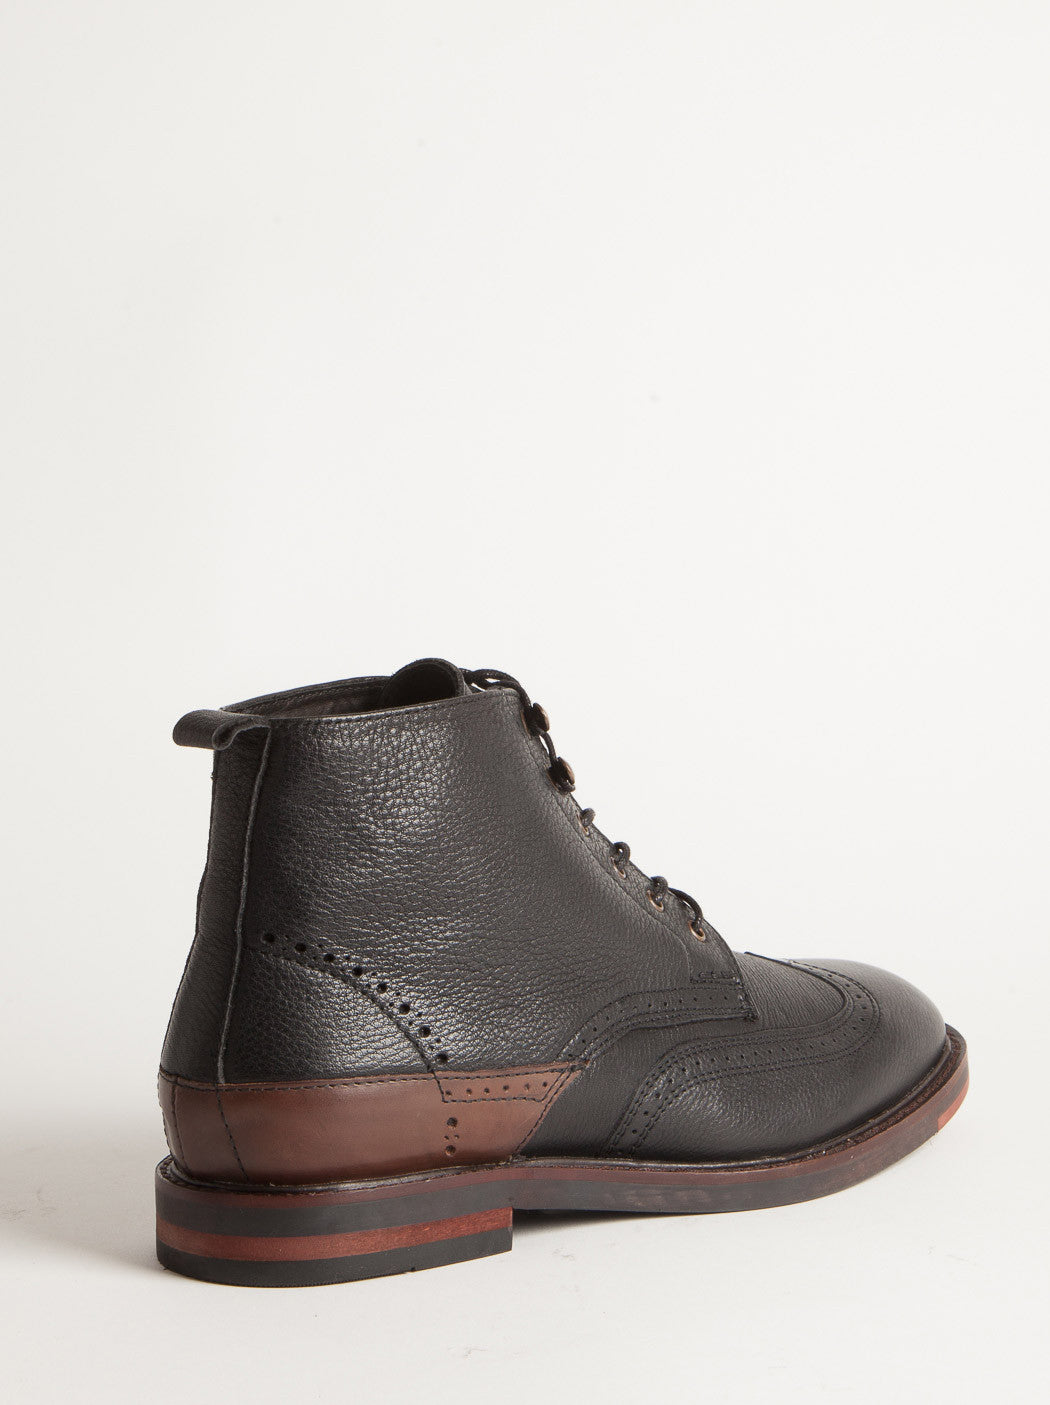 Hudson Harland Calf Leather Boots - Black